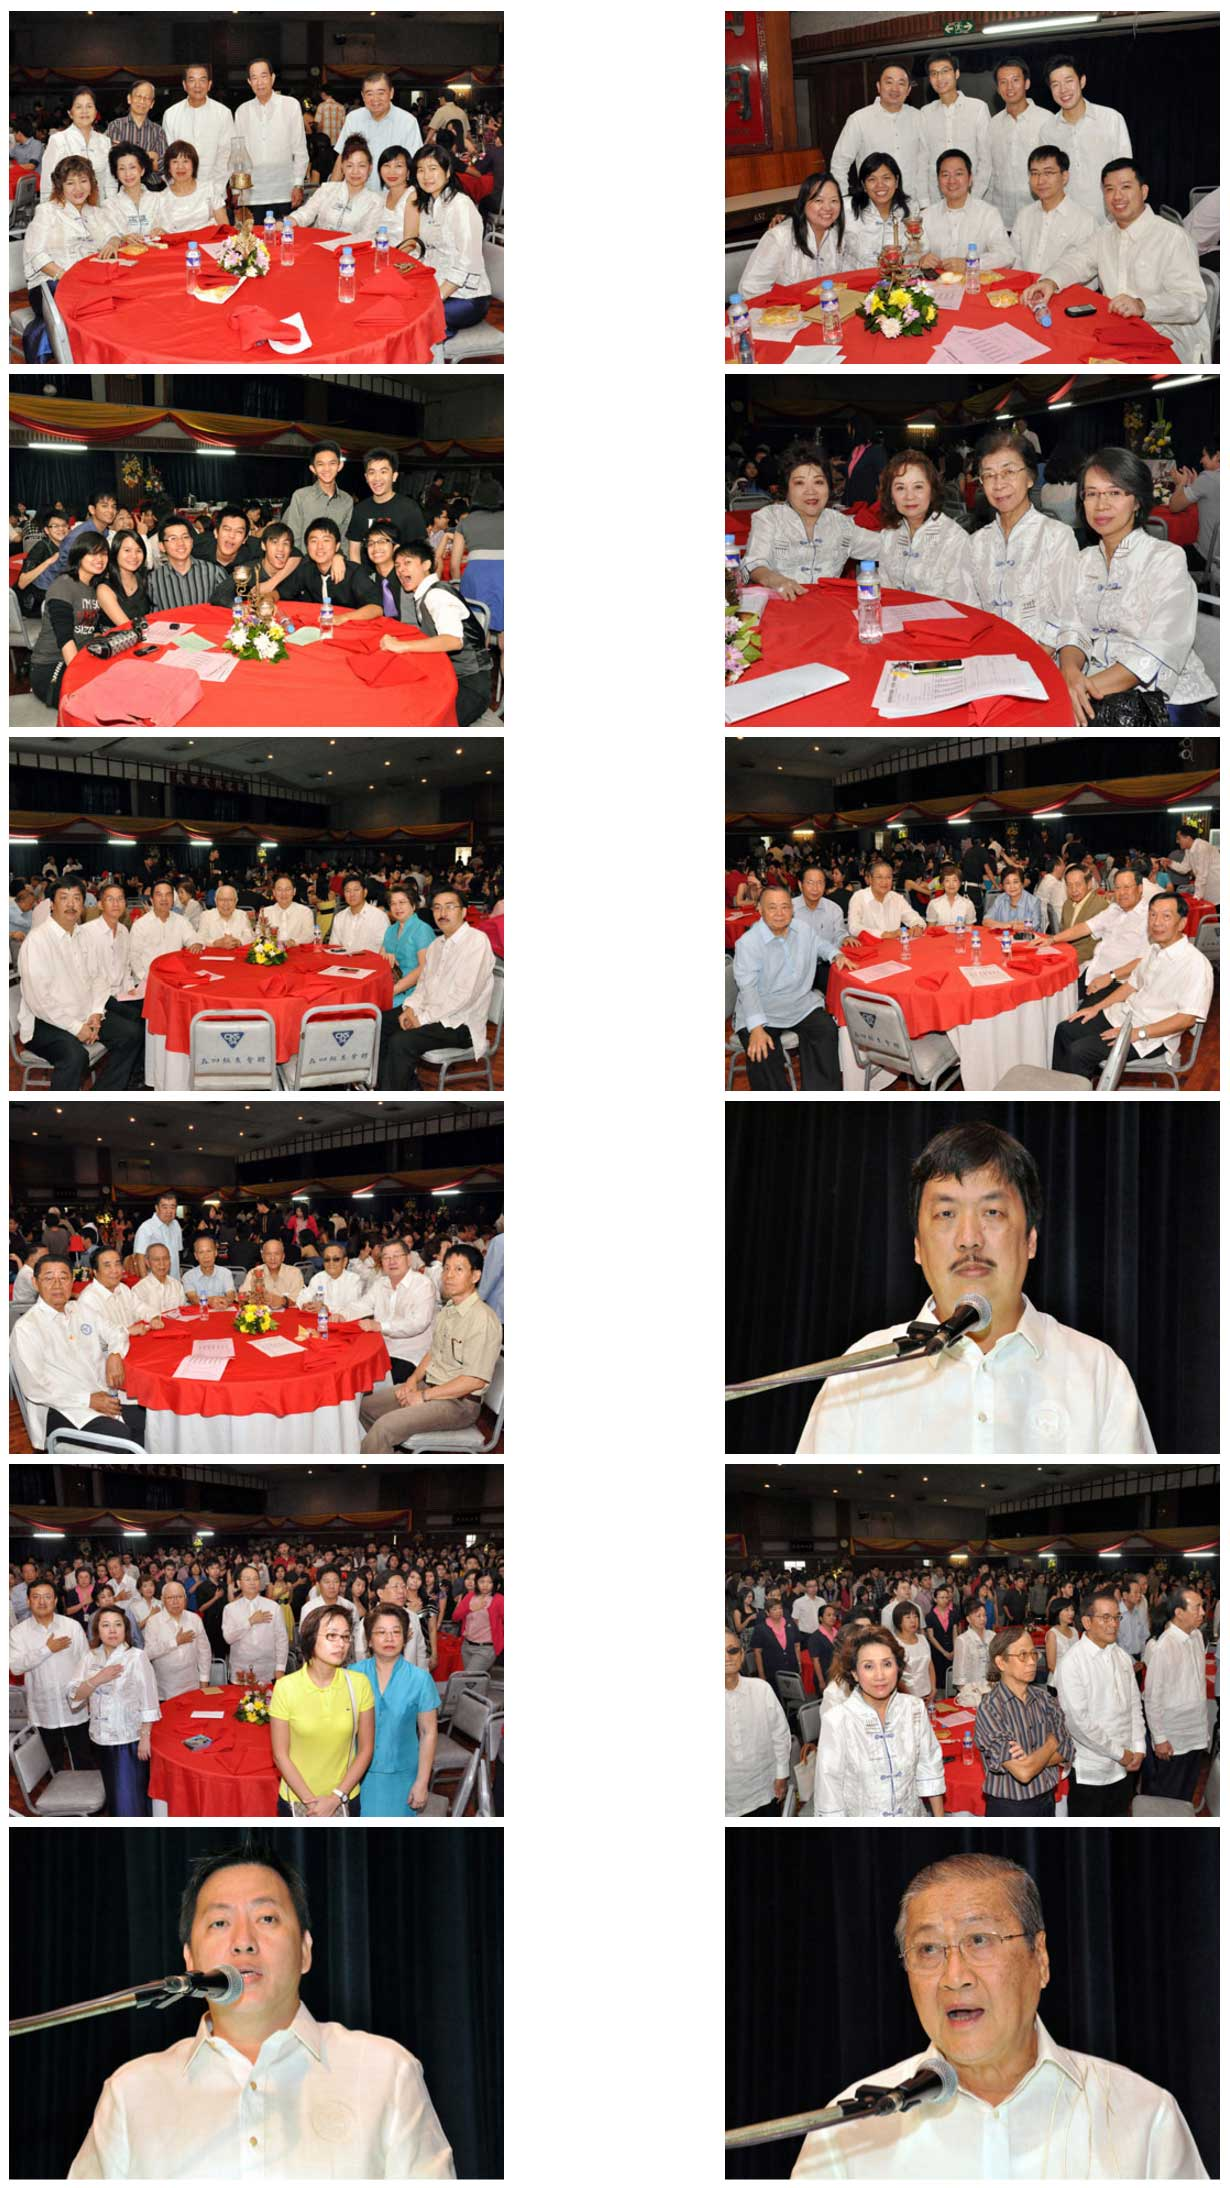 YOUTH-DAY-AND-WELCOME-PARTY-FOR-NEW-GRADUATES-OF-CLASS-2010